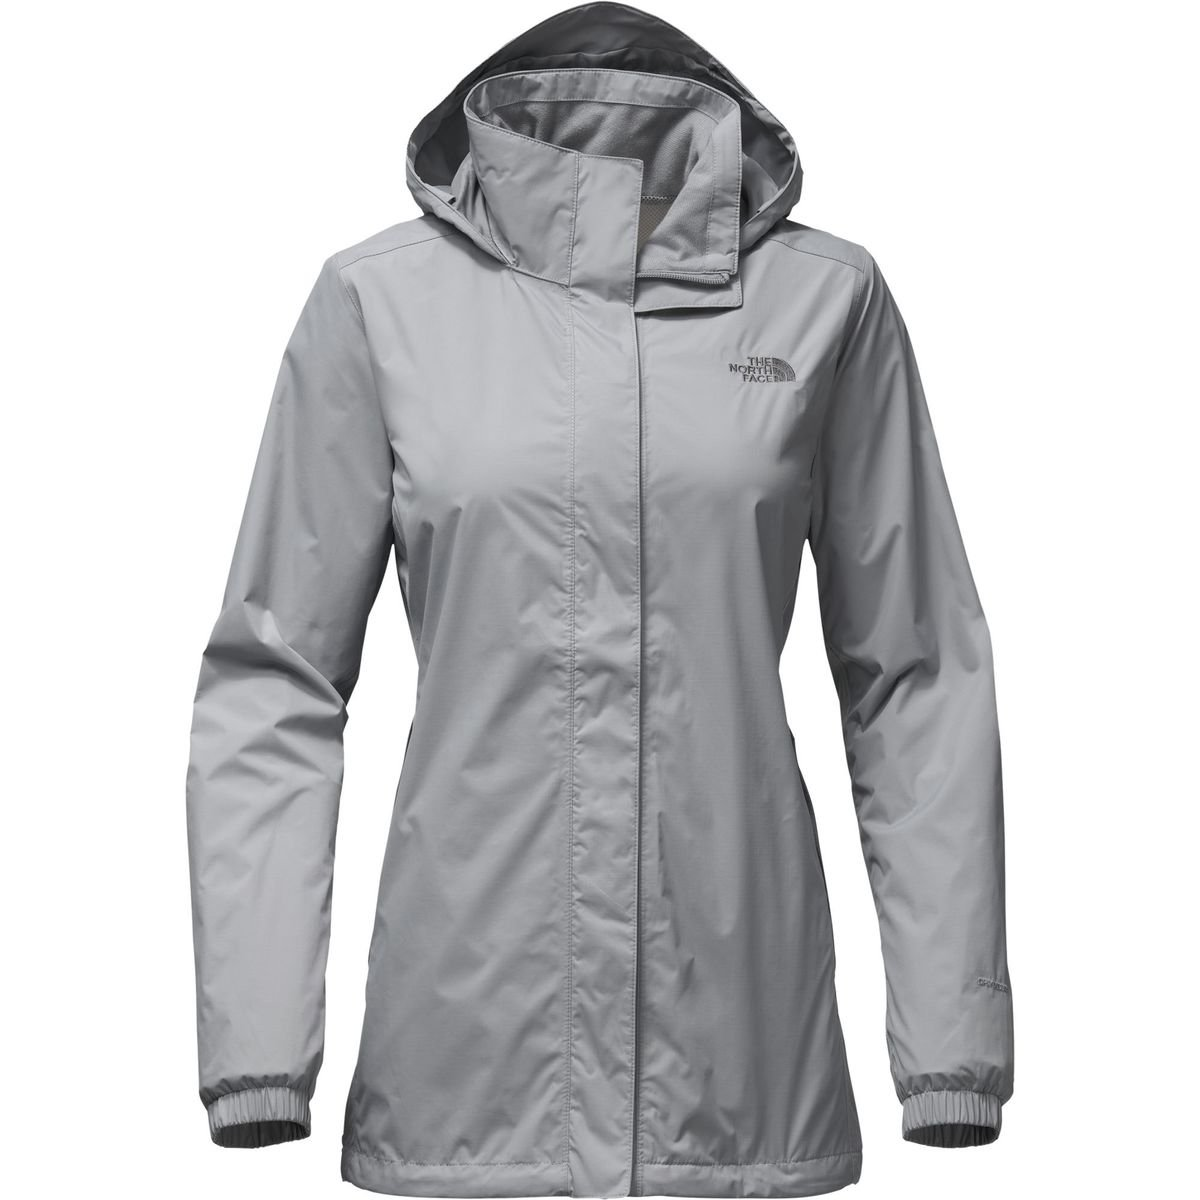 The North Face Women's Women's Resolve Parka - Mid Grey - XS (Past Season)